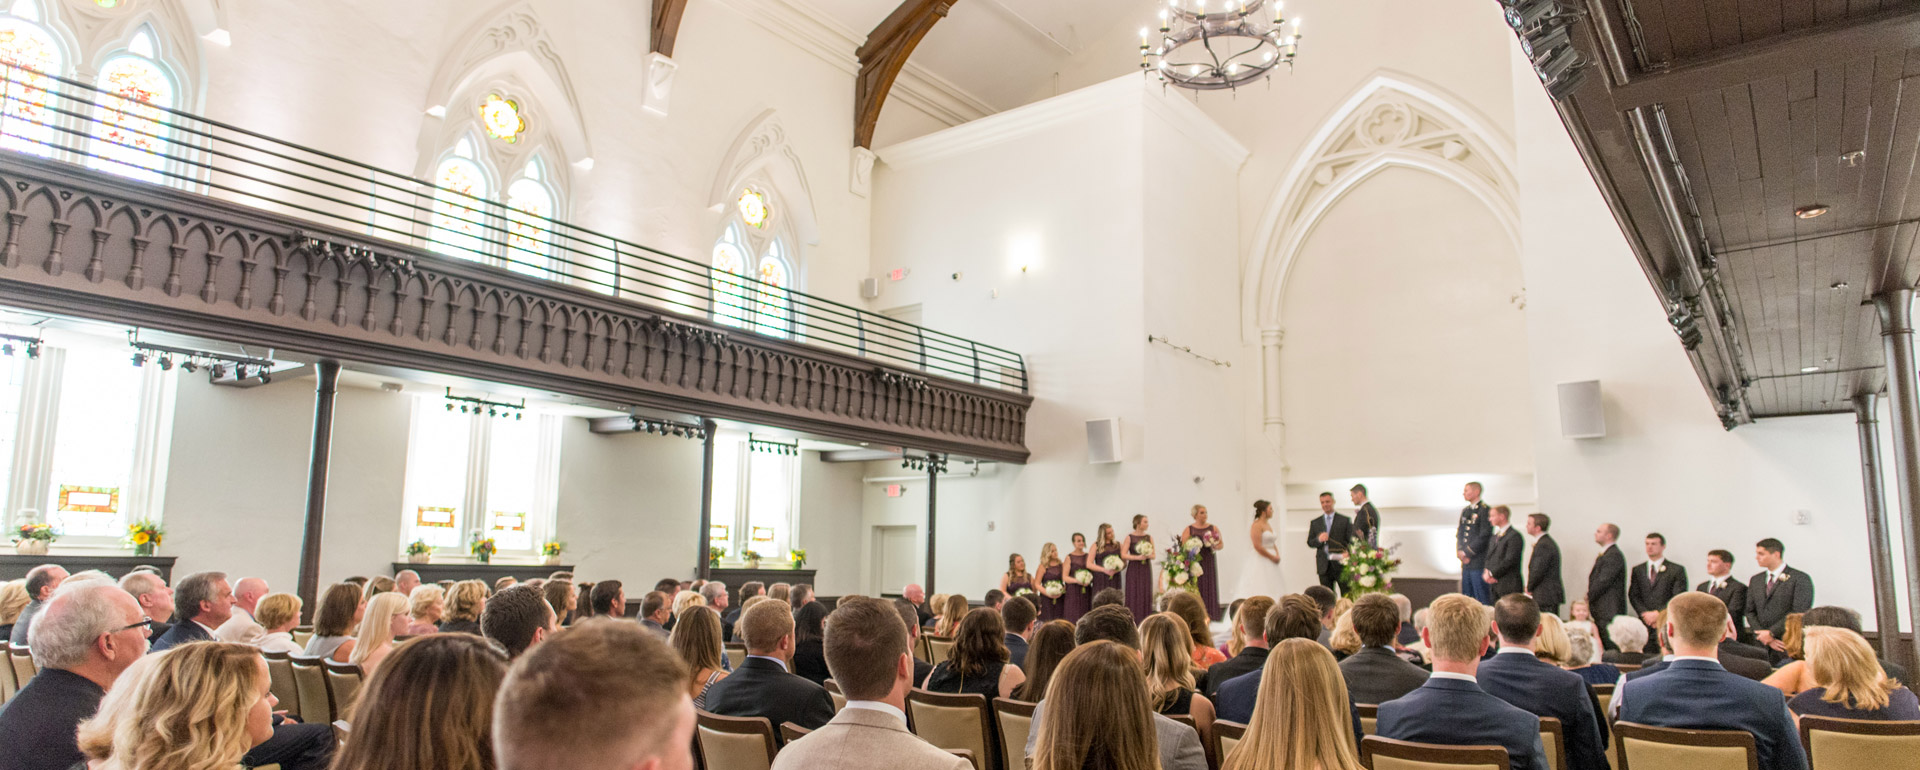 wedding ceremony in The Assembly at The Transept